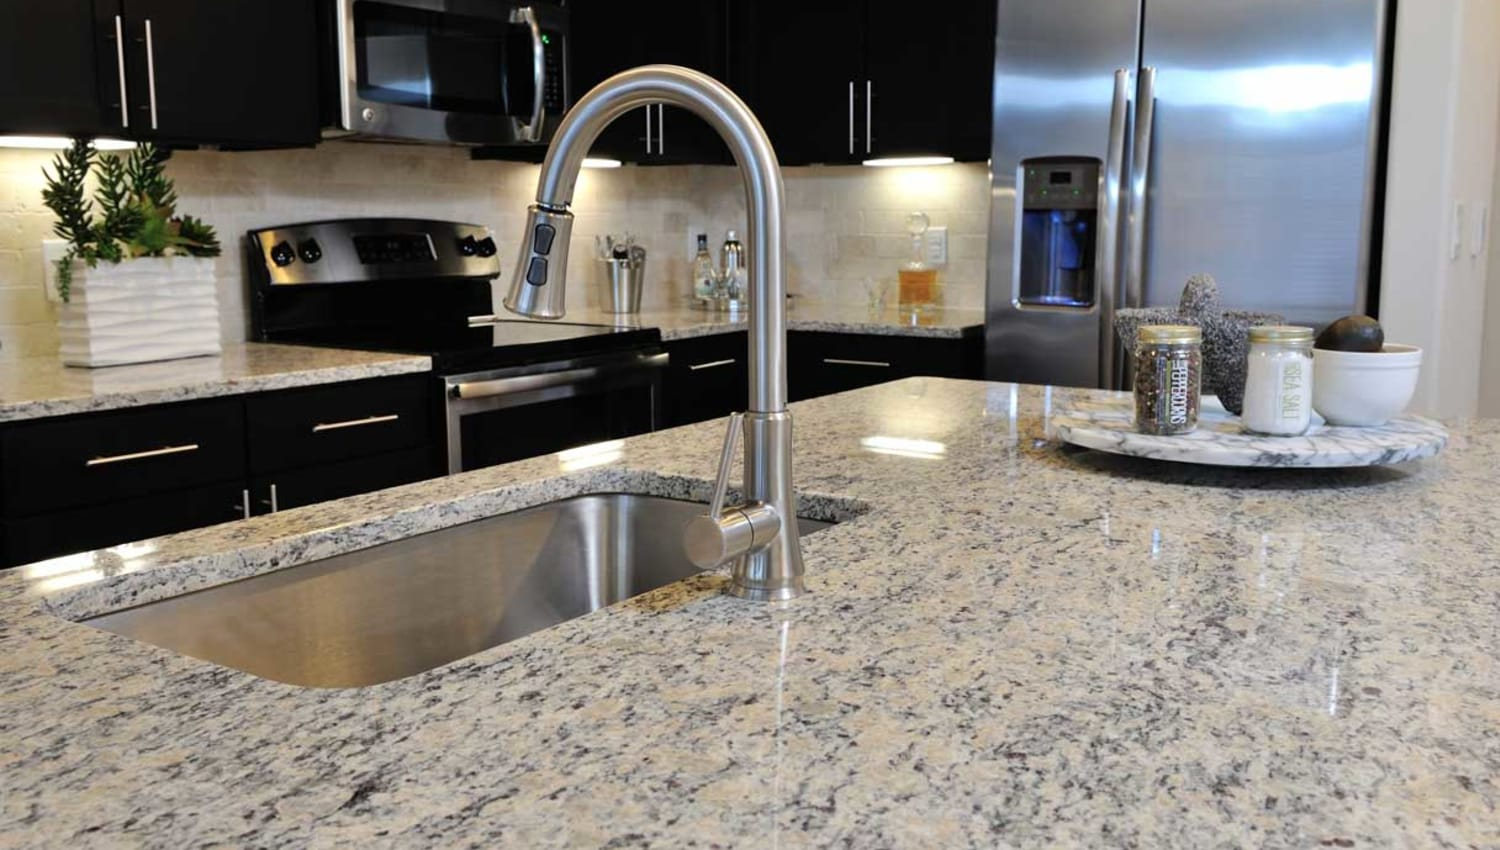 Granite counter island with stainless steel sink at Olympus Falcon Landing in Katy, Texas